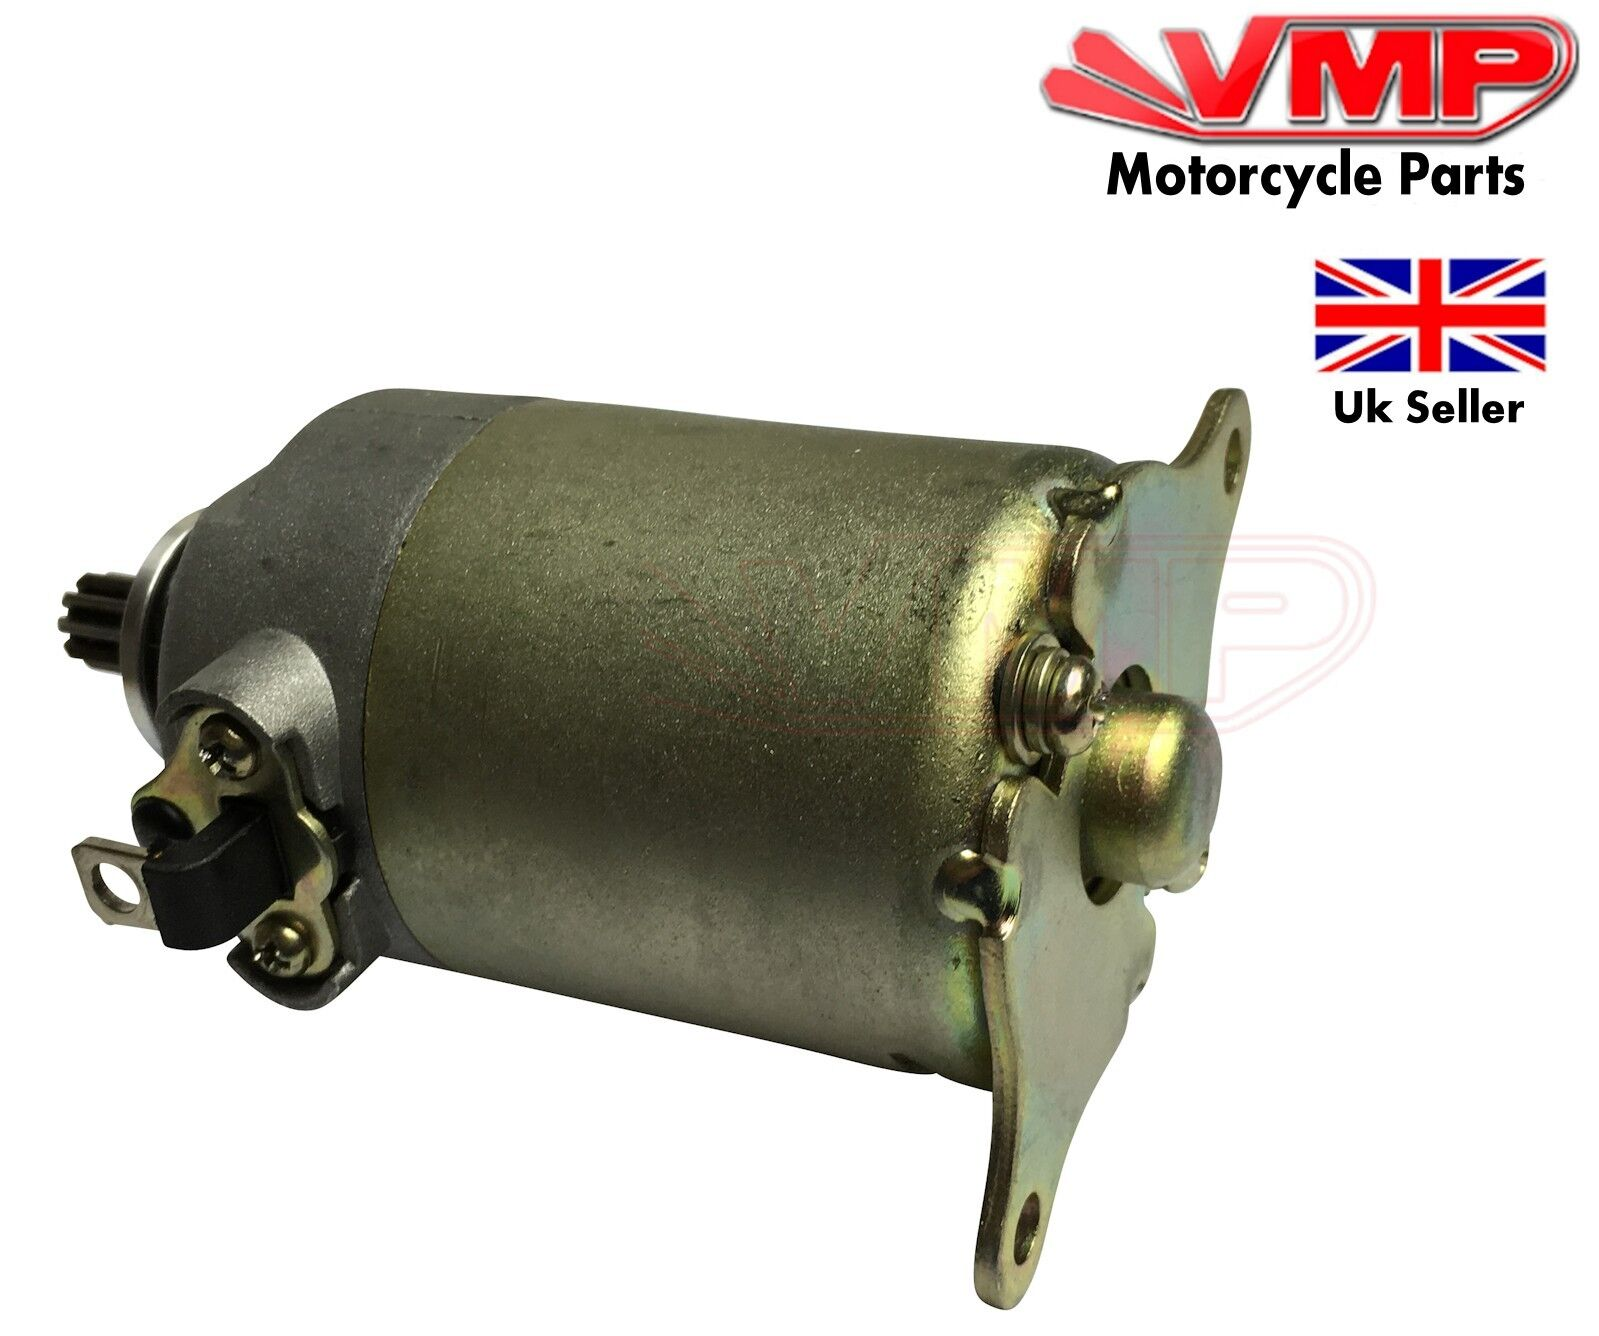 New Scooter Electric Starter Motor 152QMI for Lexmoto FMS 125